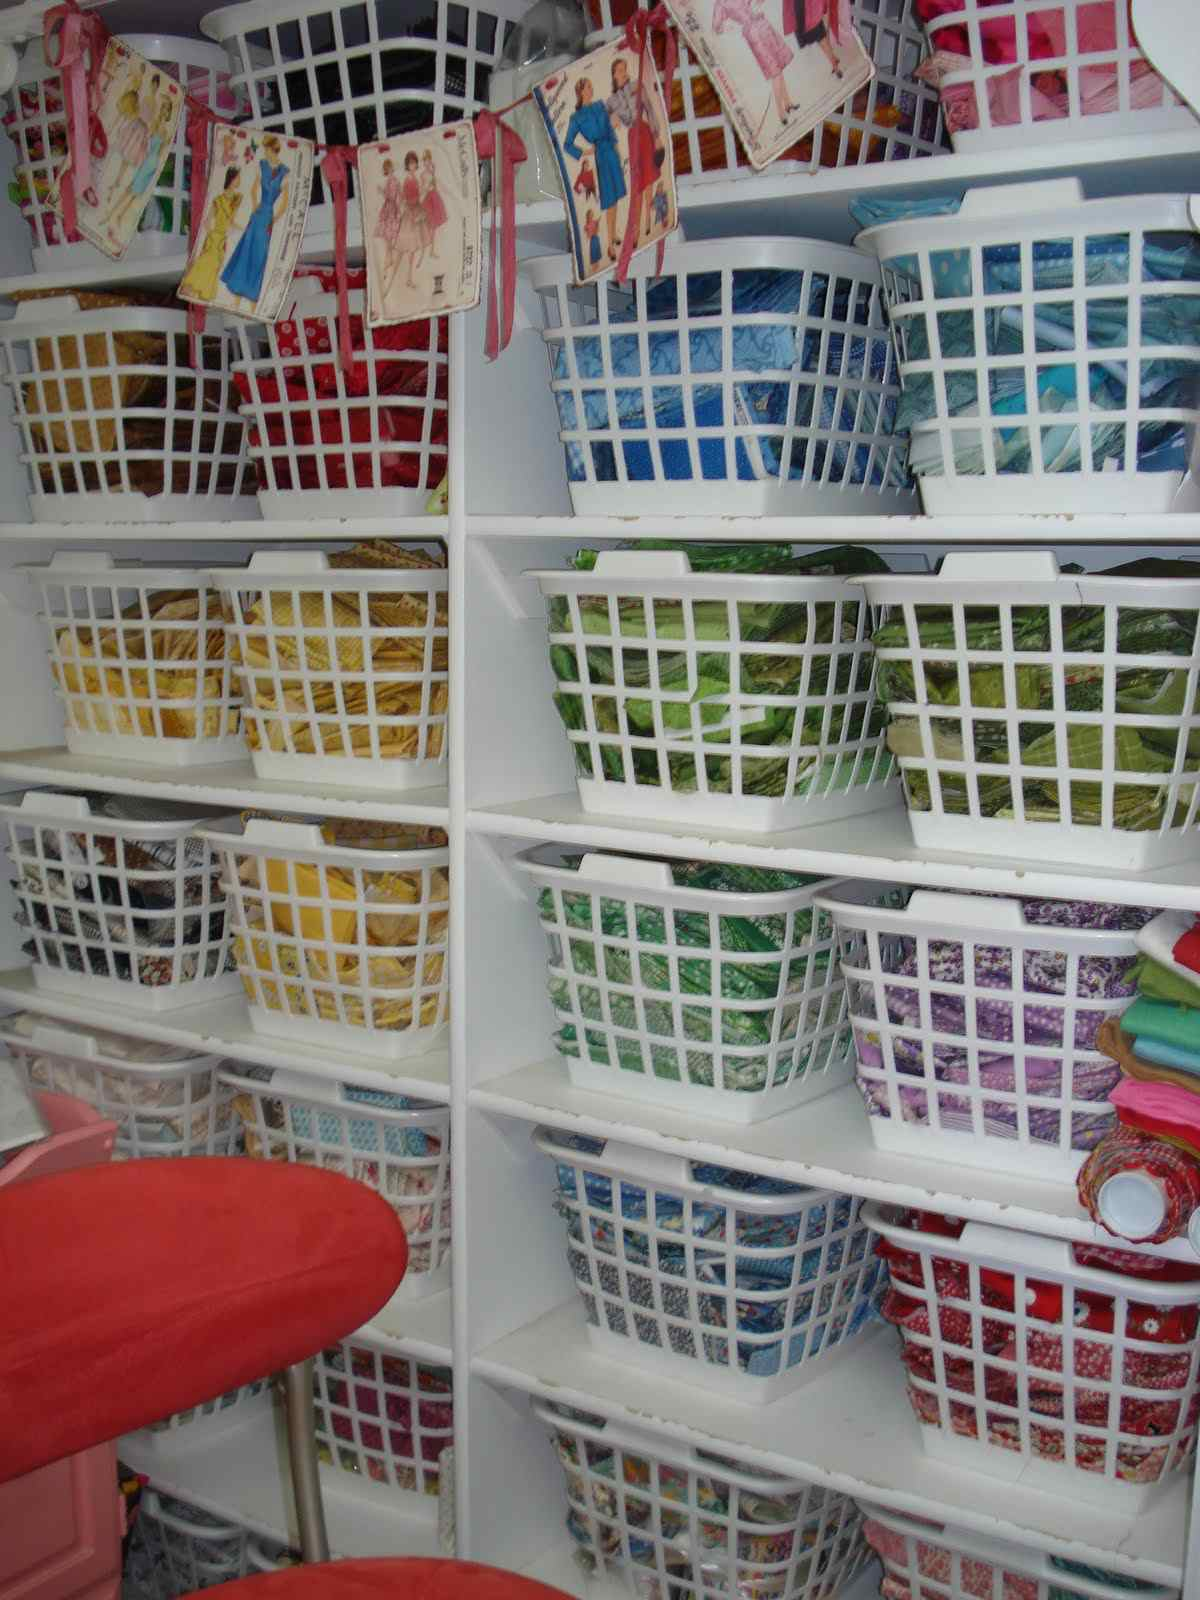 fabric in laundry baskets